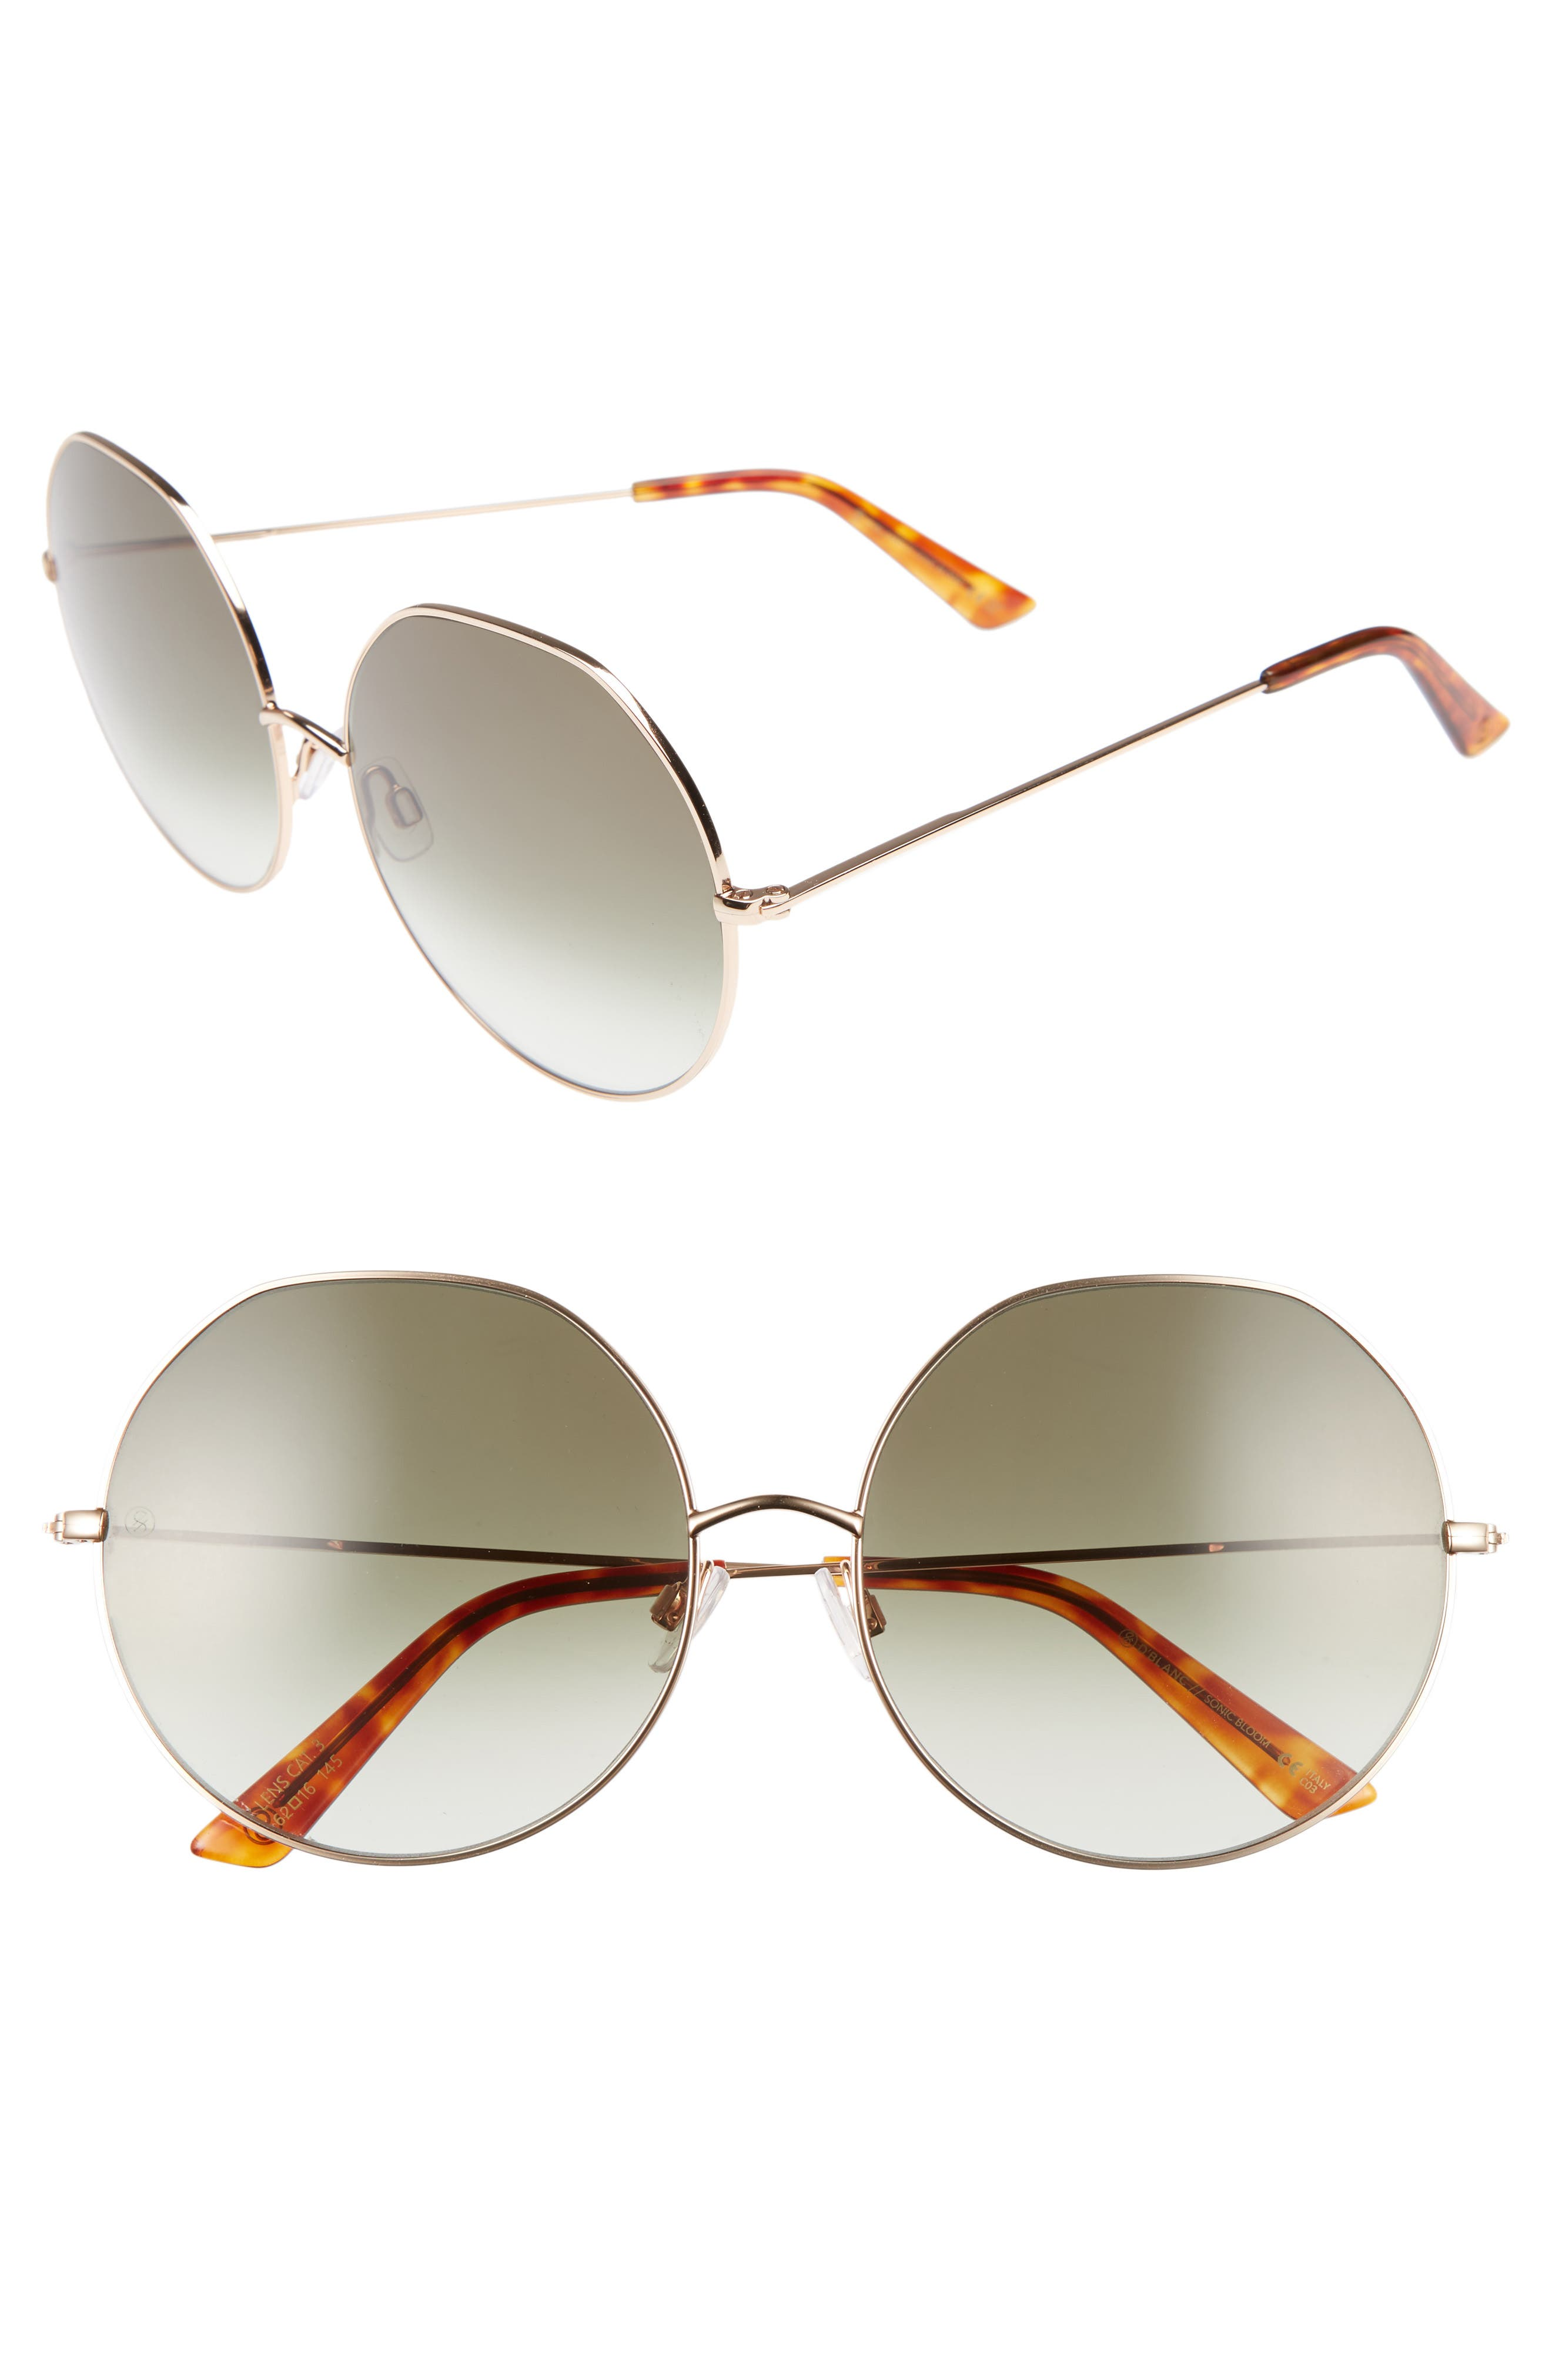 D'BLANC Sonic Boom 62mm Gradient Round Sunglasses,                         Main,                         color, Polished Gold/ Olive Gradient